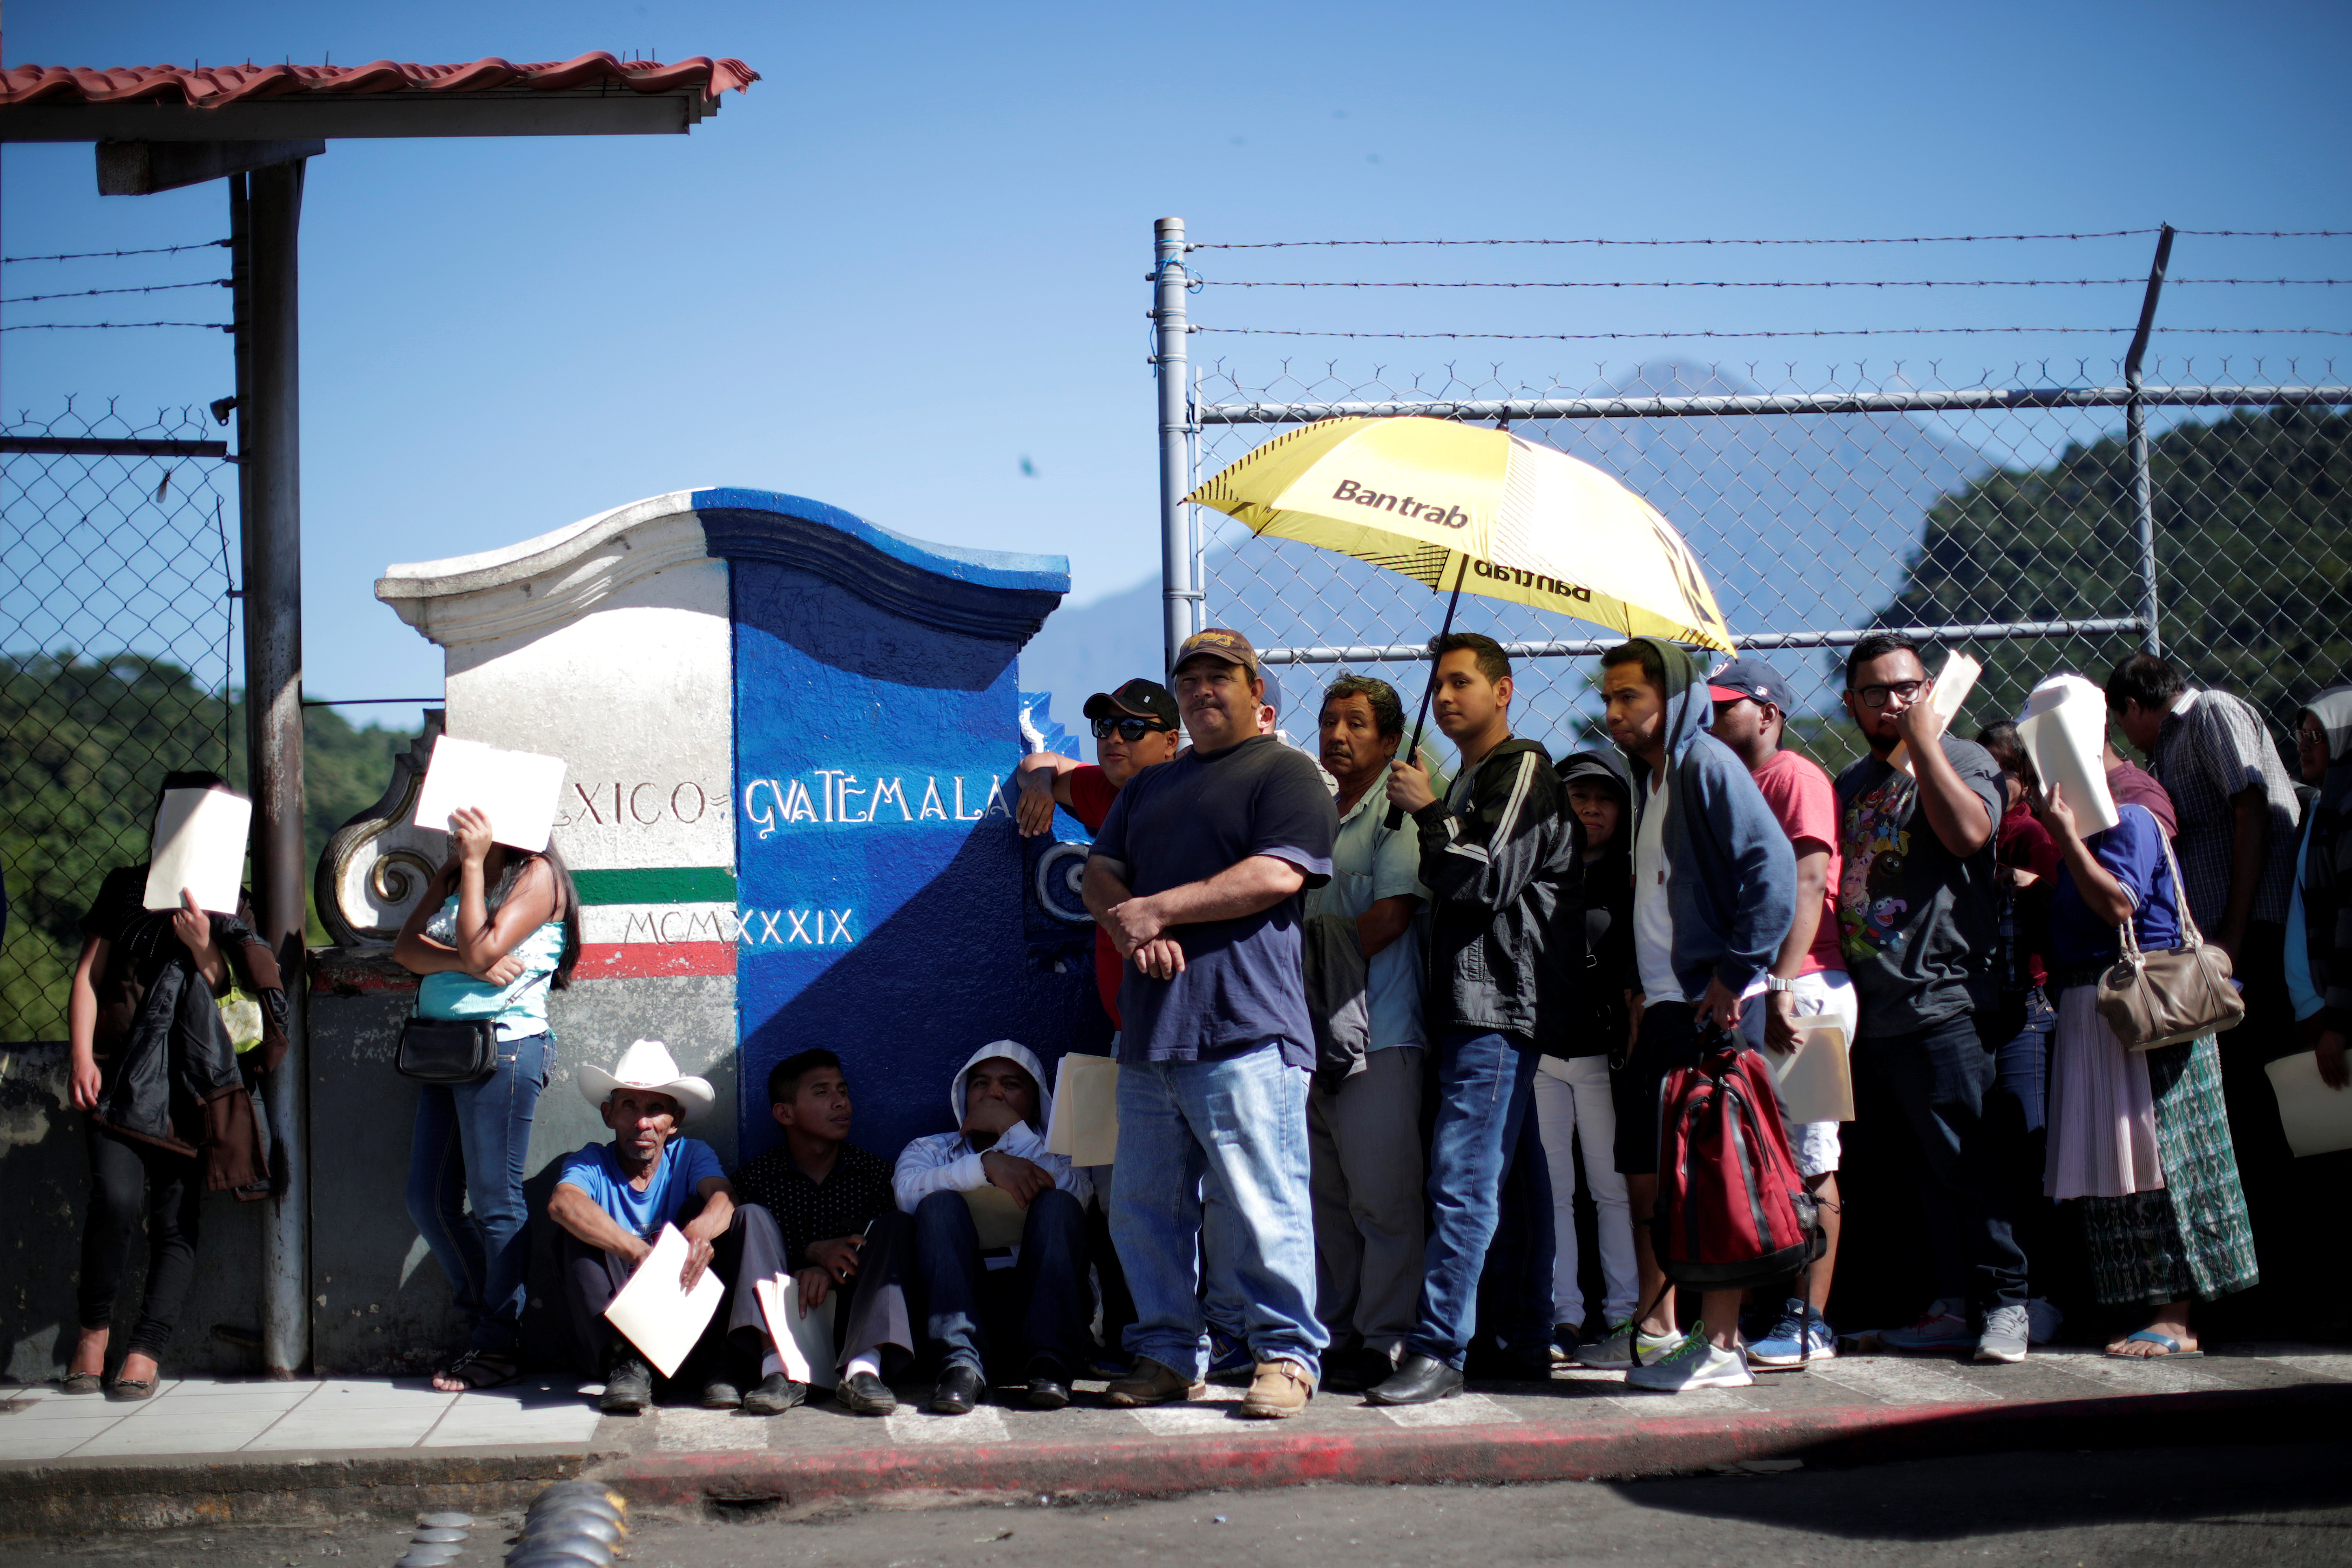 Central American migrants queue at a border connecting Guatemala and Mexico while waiting to cross into Mexico, in Talisman, Mexico October 23, 2018. REUTERS/Ueslei Marcelino